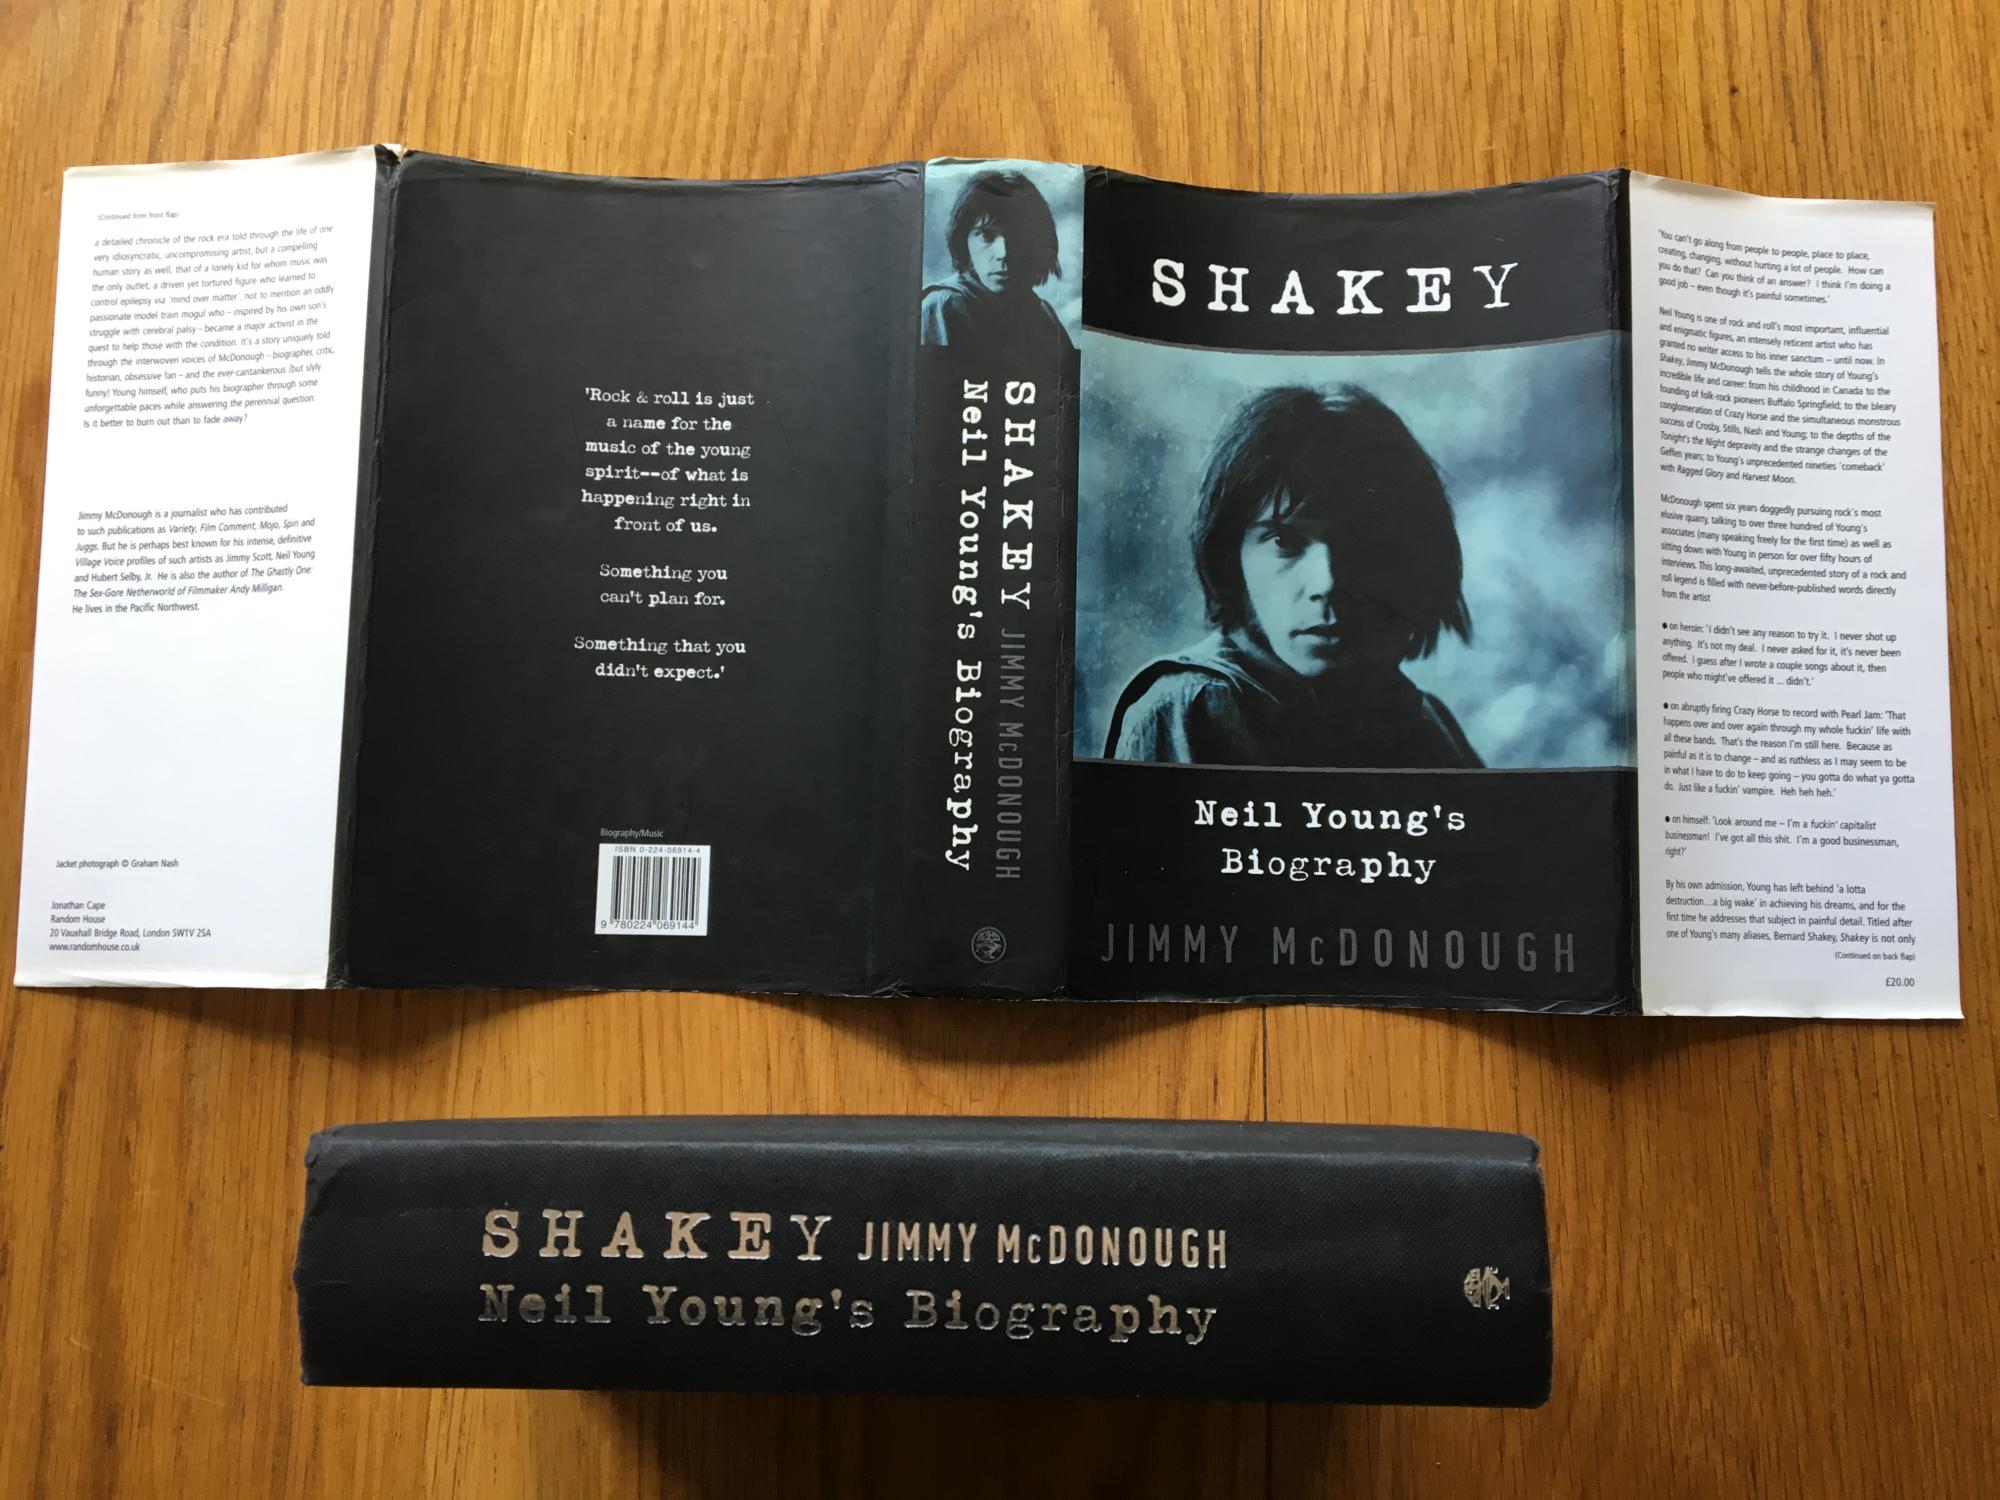 Shakey: Neil Youngs Biography